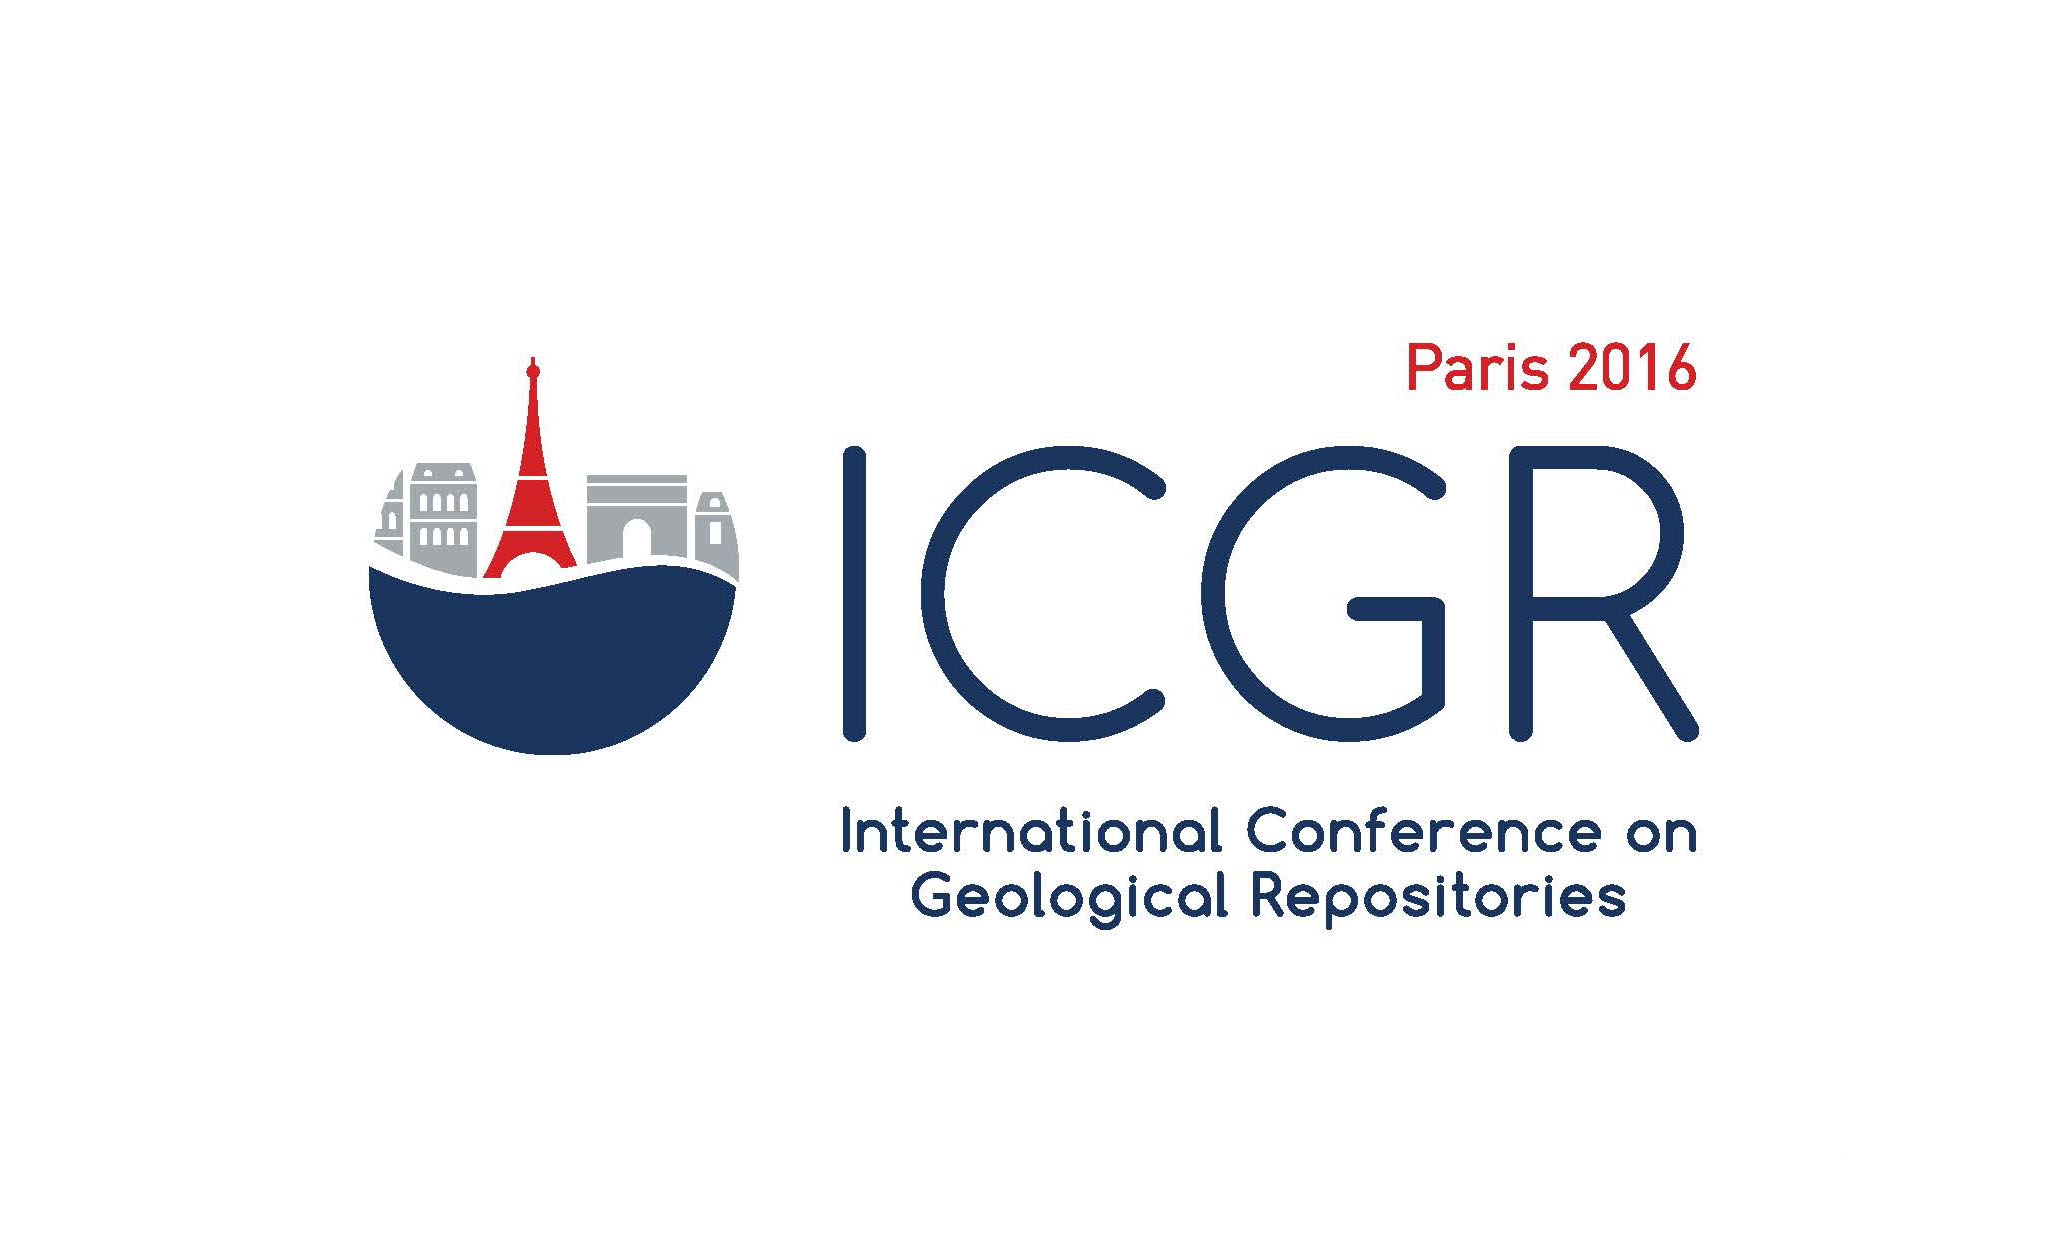 International Conference on Geological Repositories (ICGR) 2016